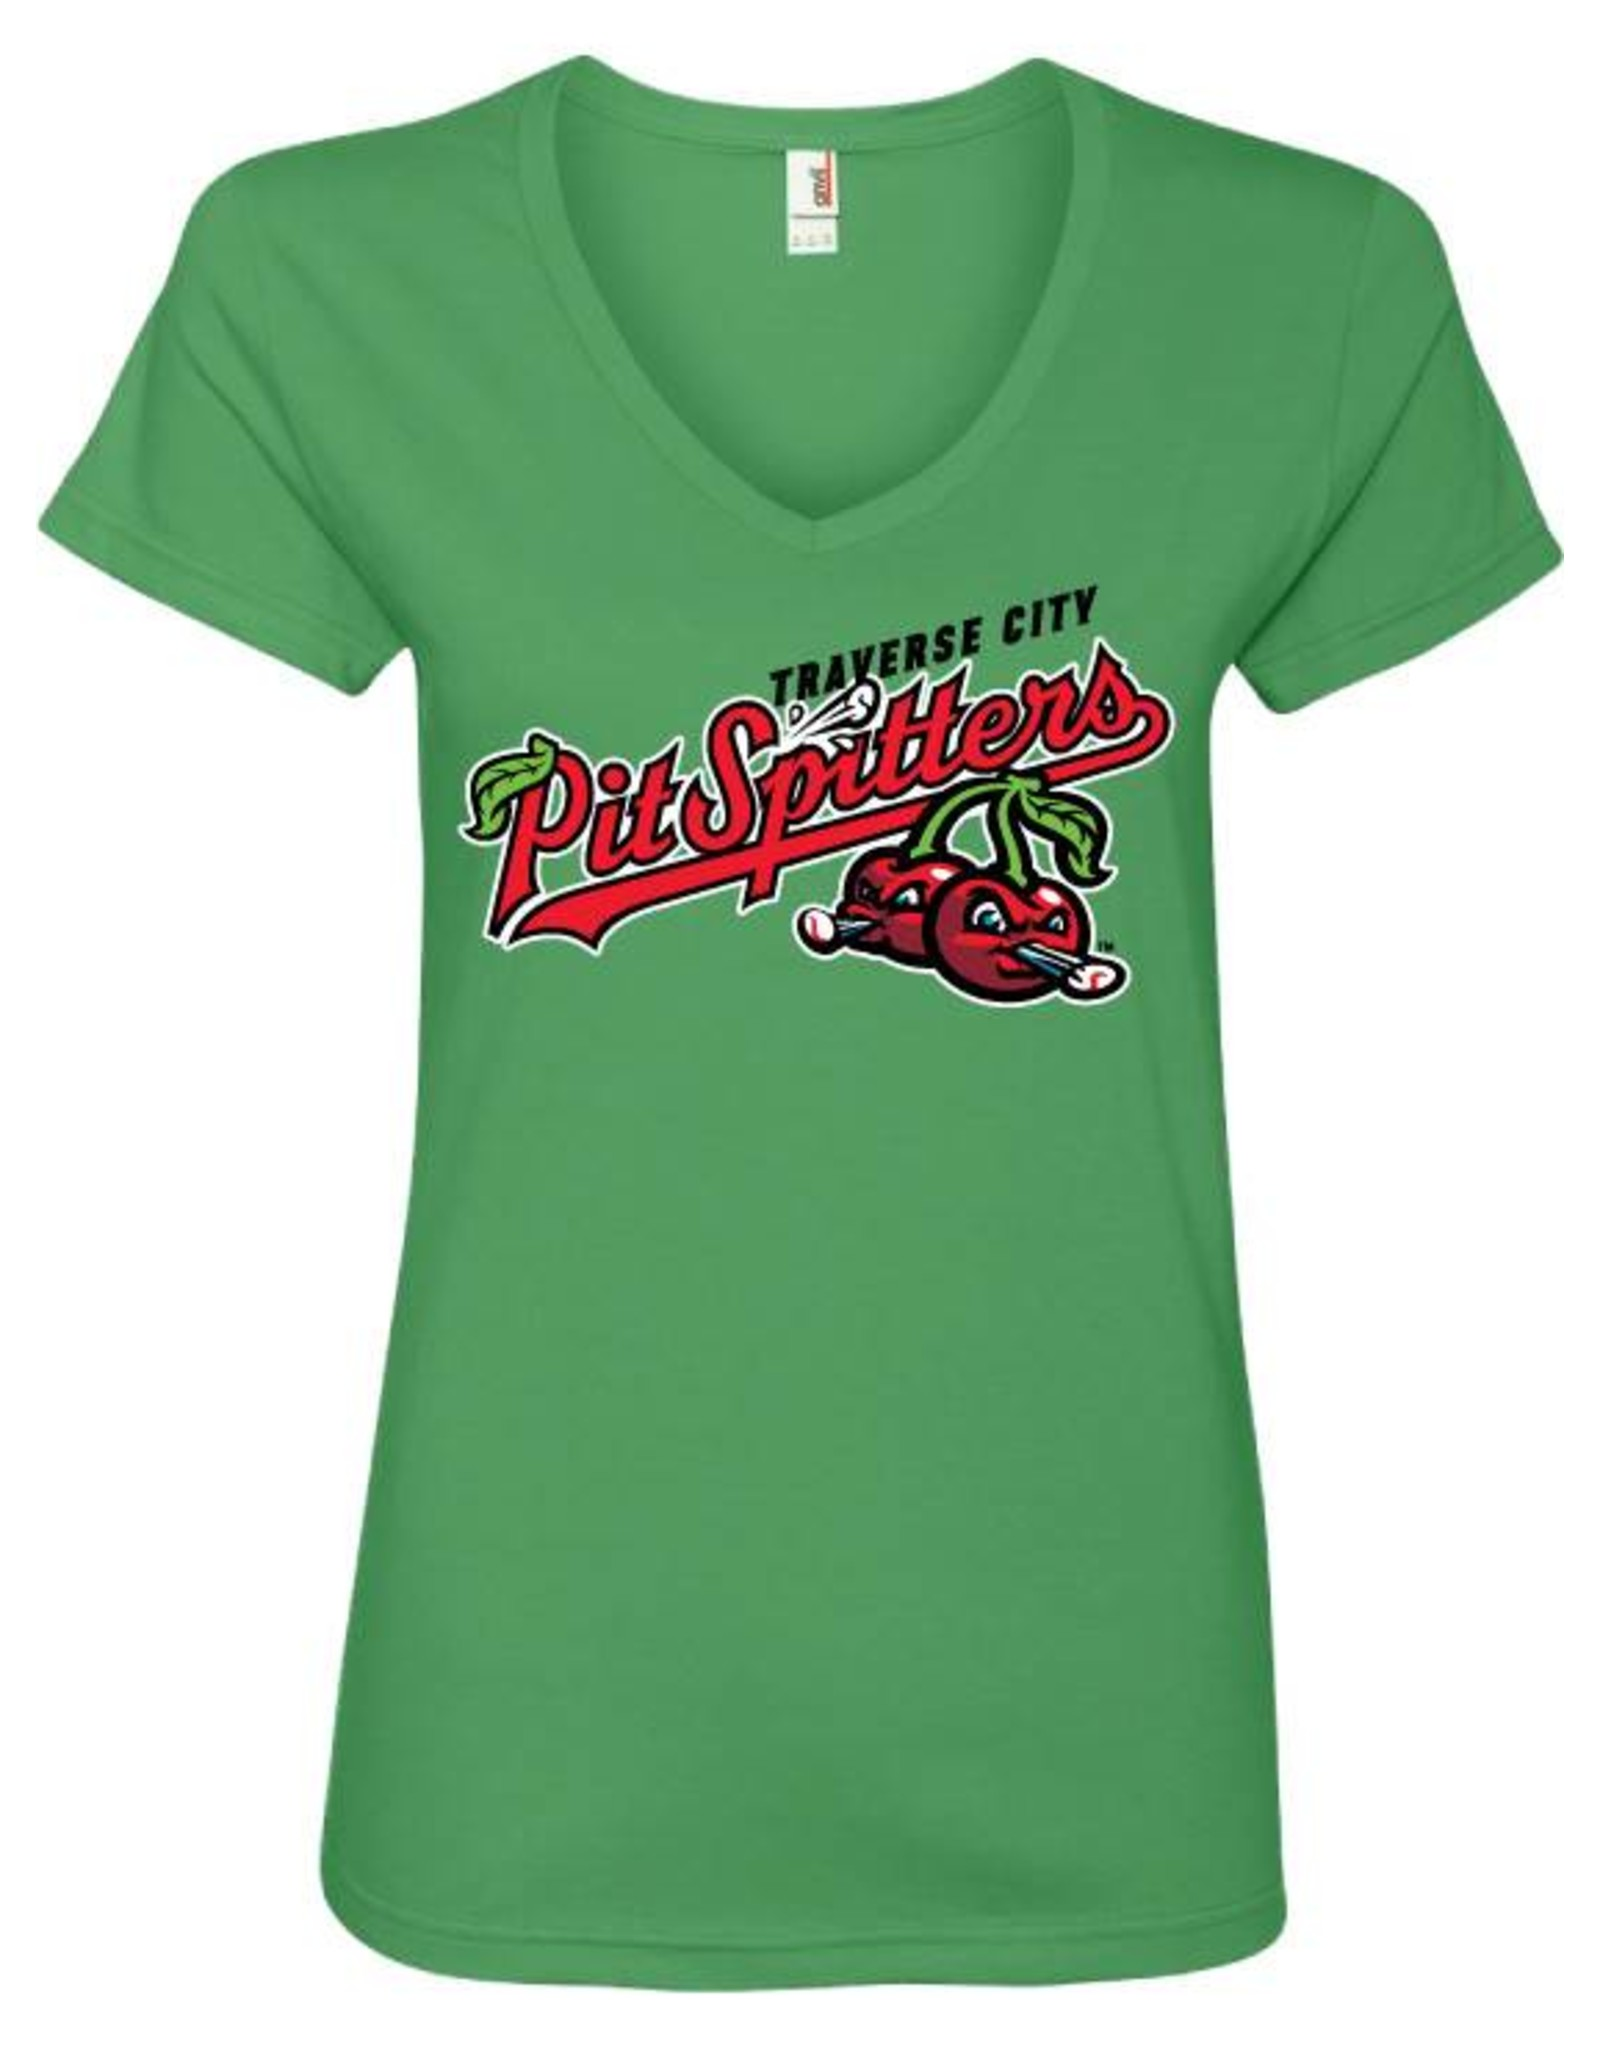 2601 Ladies Primary Logo Green Apple Tee